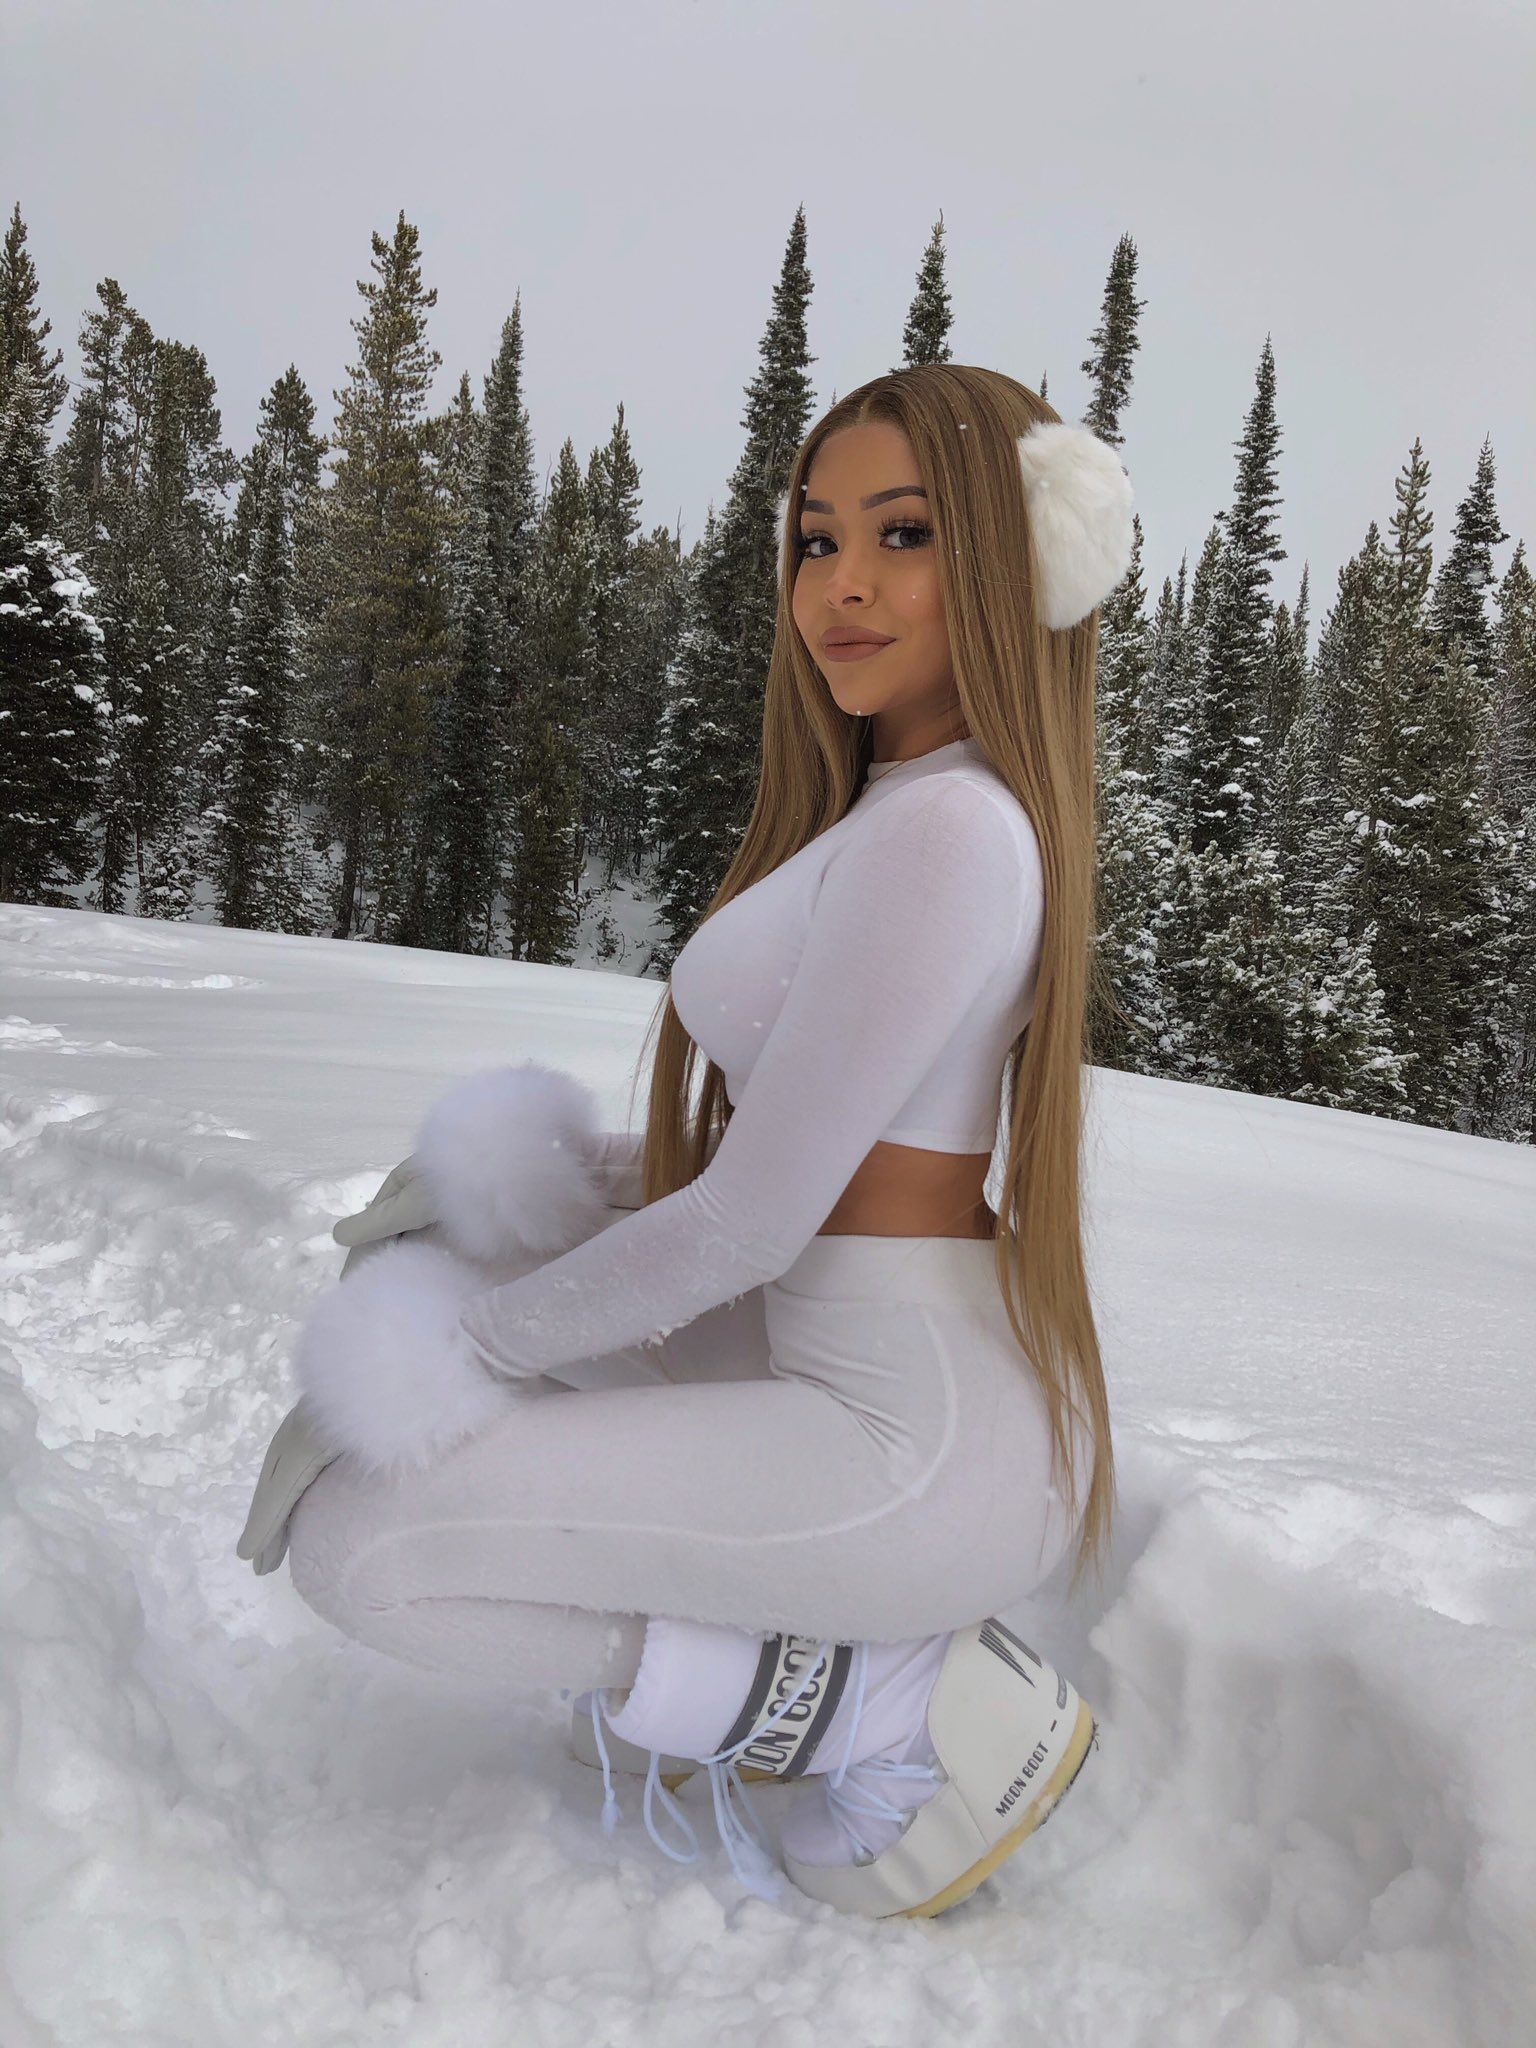 Daisy Marquez on Twitter | Snow outfits for women